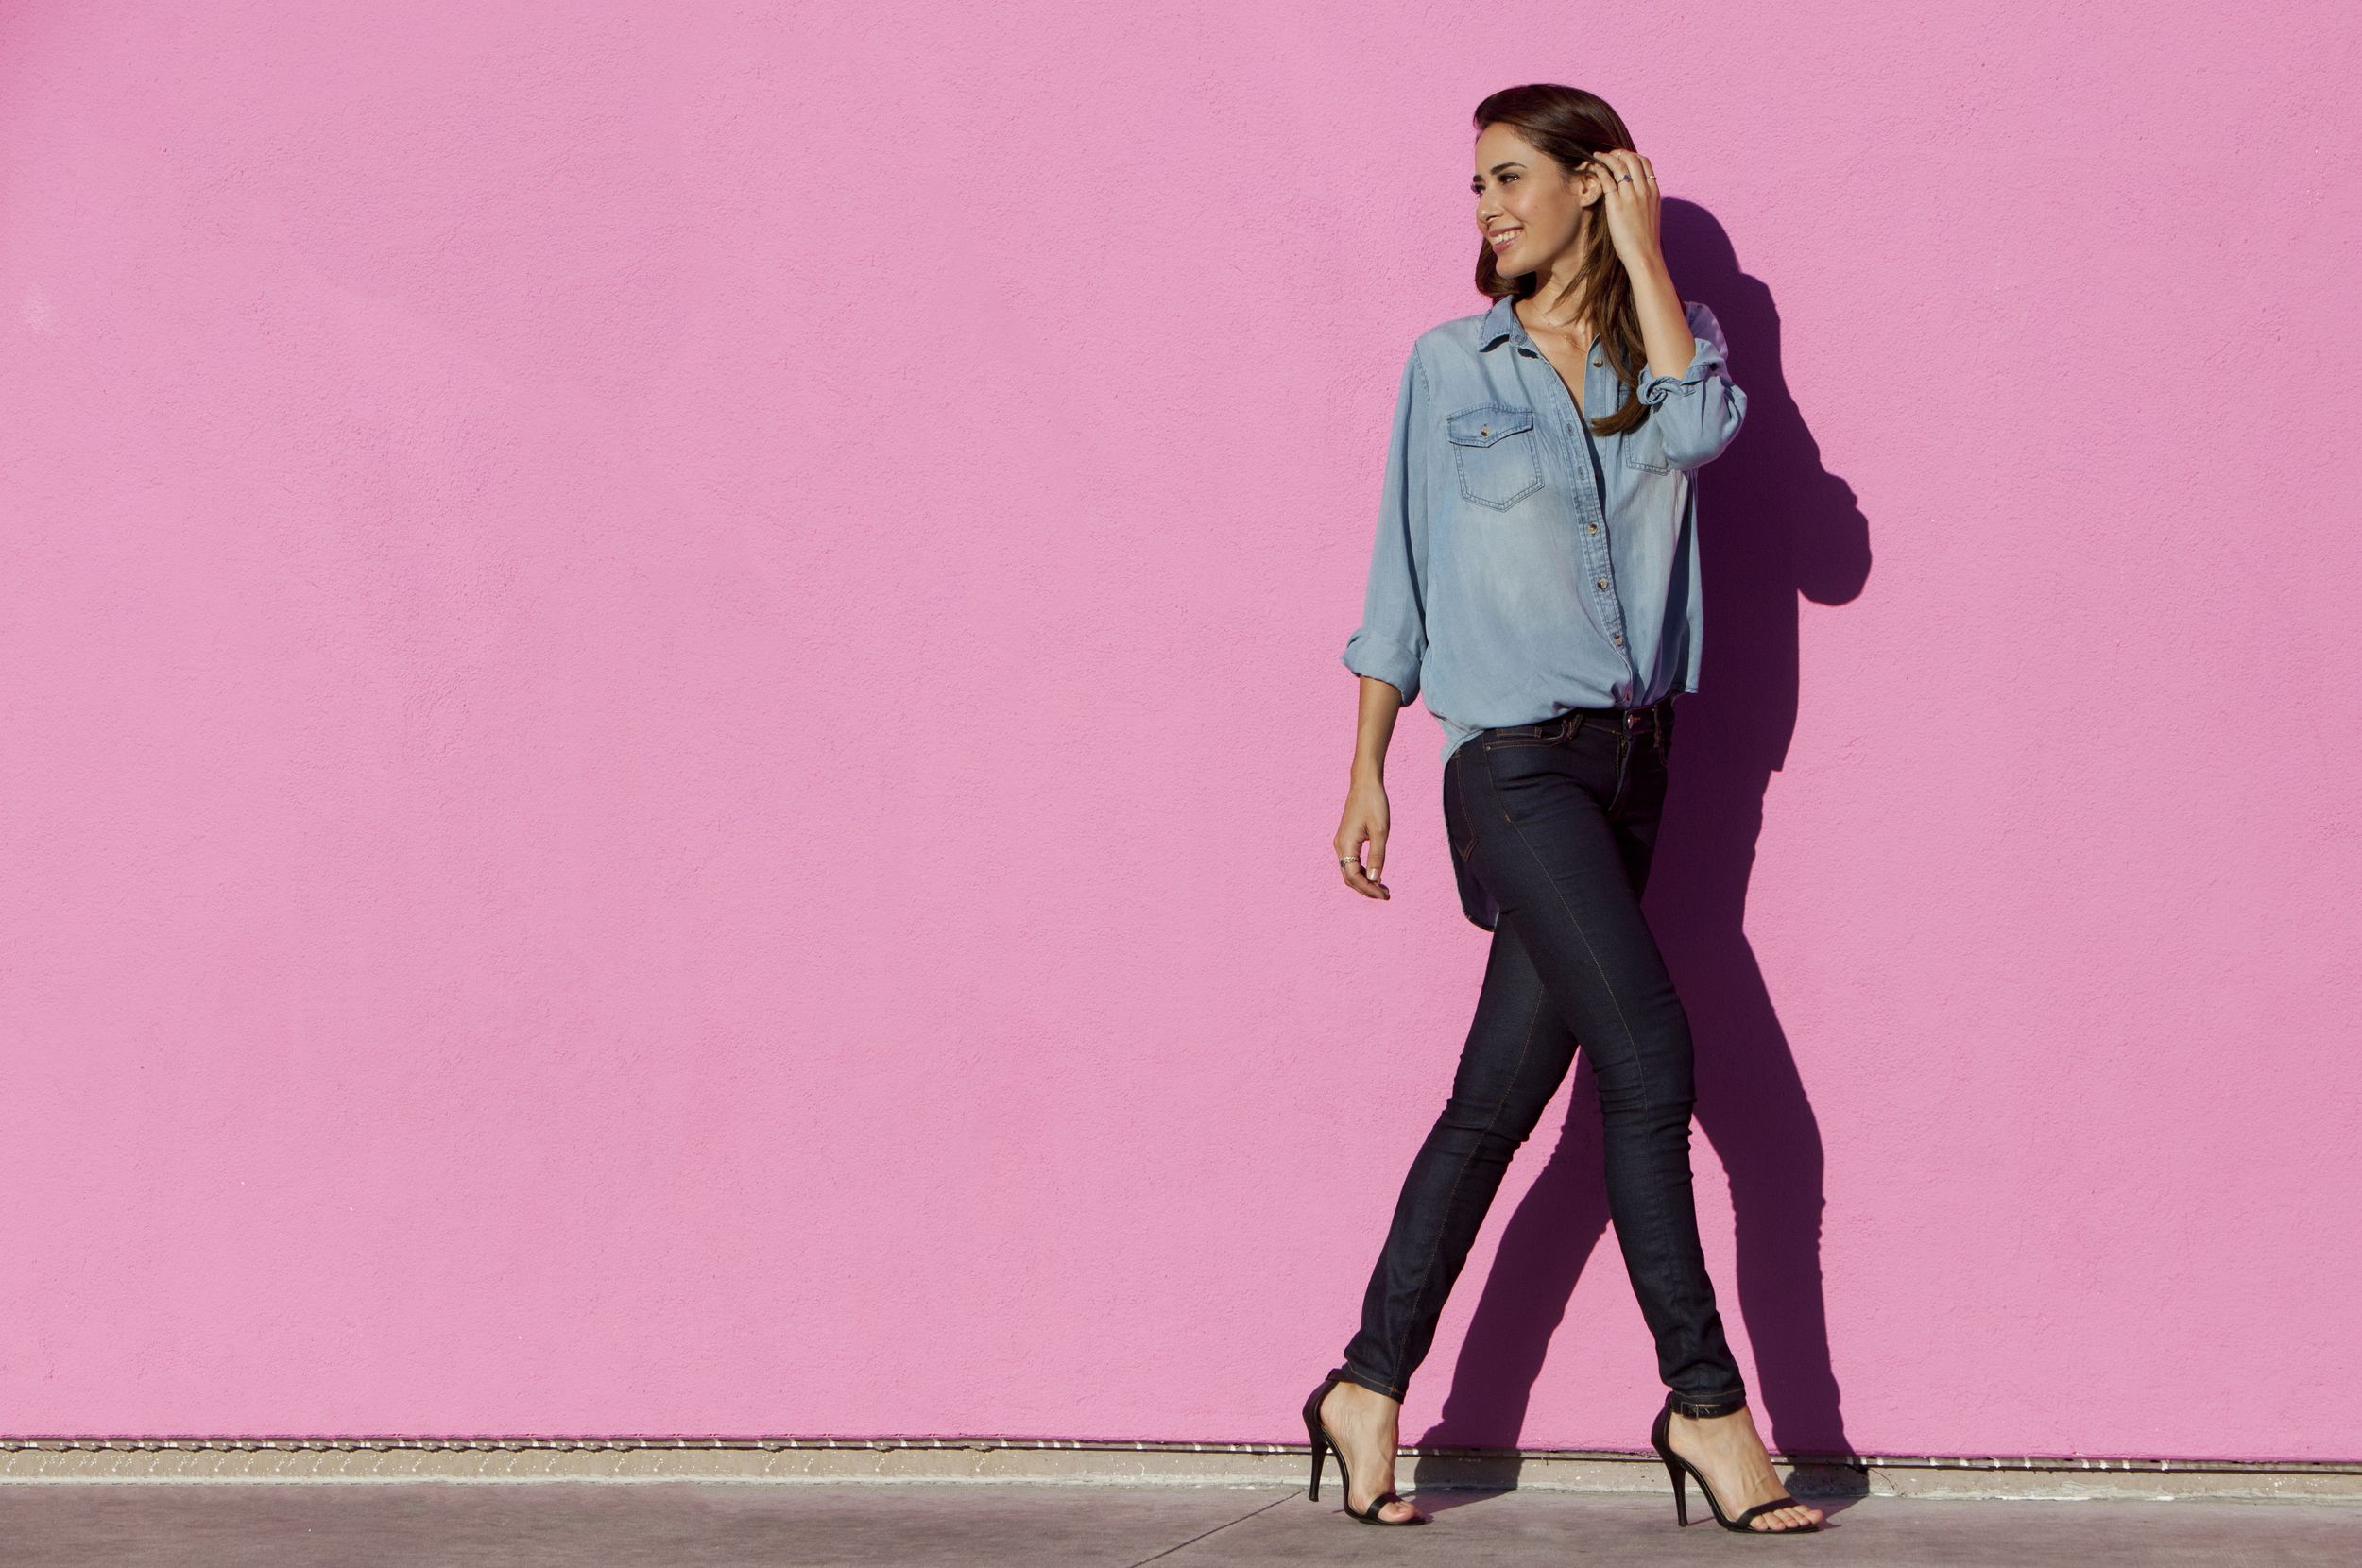 The double-denim trend (or as I remember it being called the Canadian Tuxedo) is being pushed by retailers this fall.